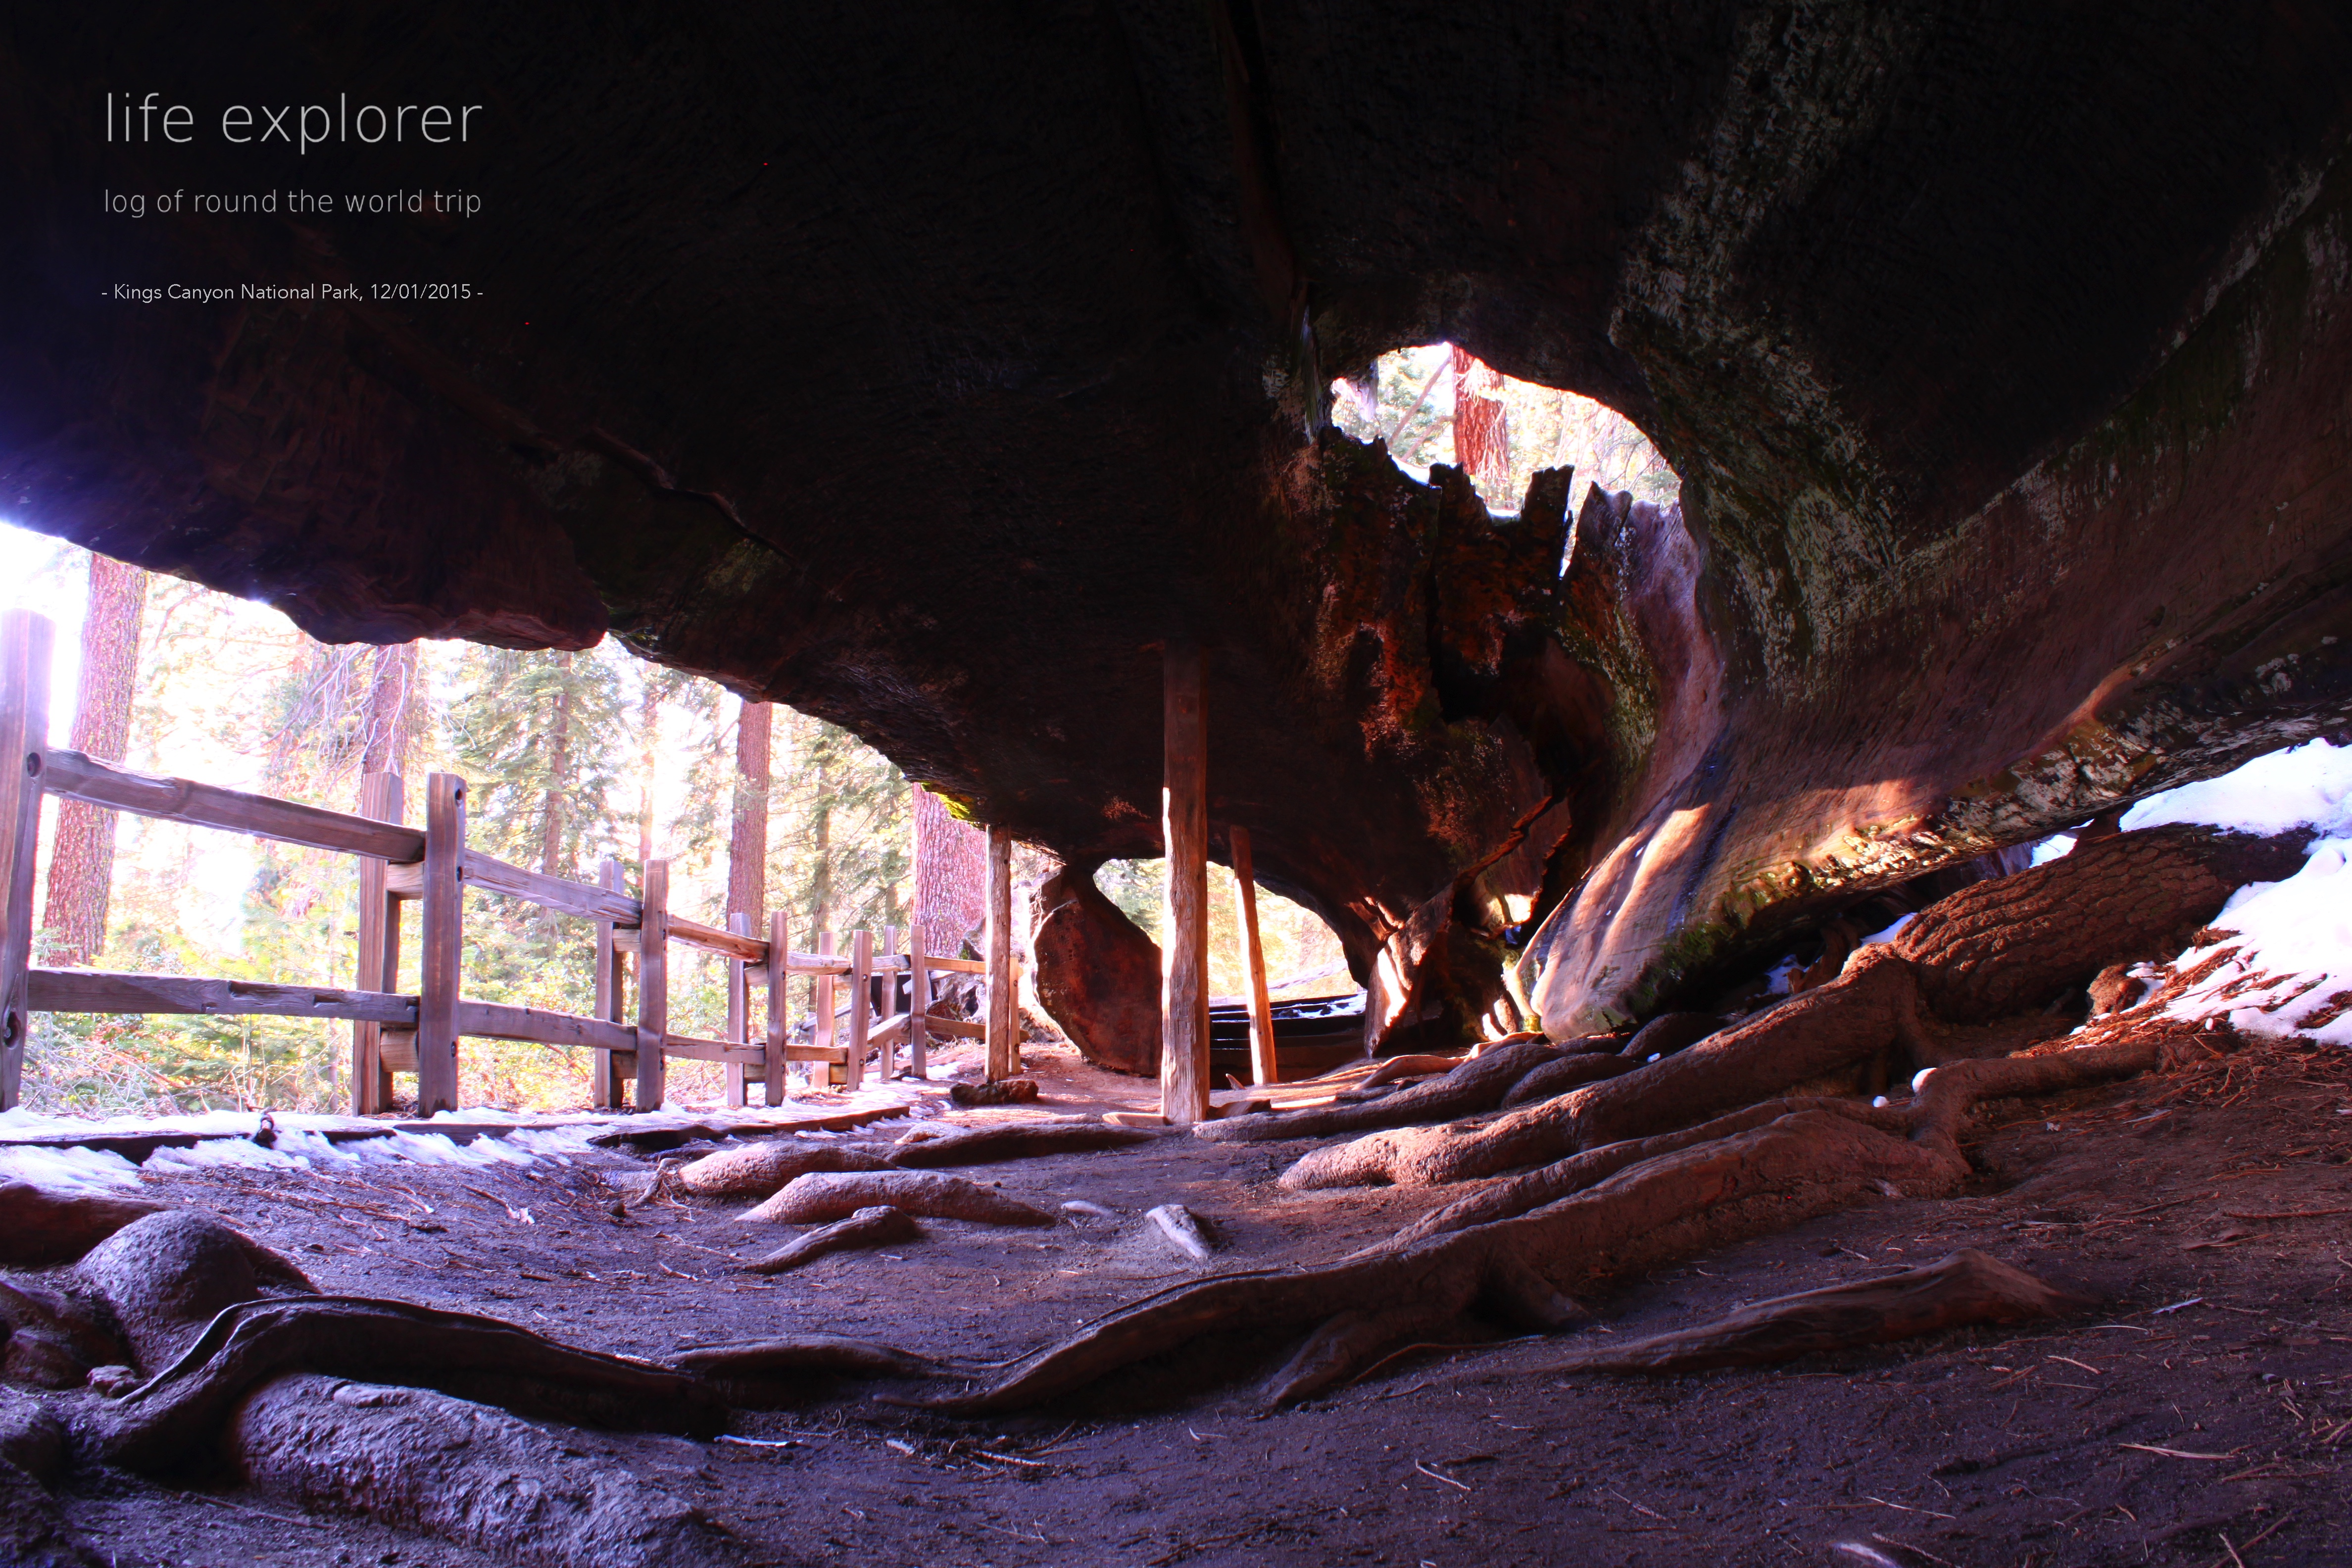 [Photo] 151201 US – Kings Canyon National Park